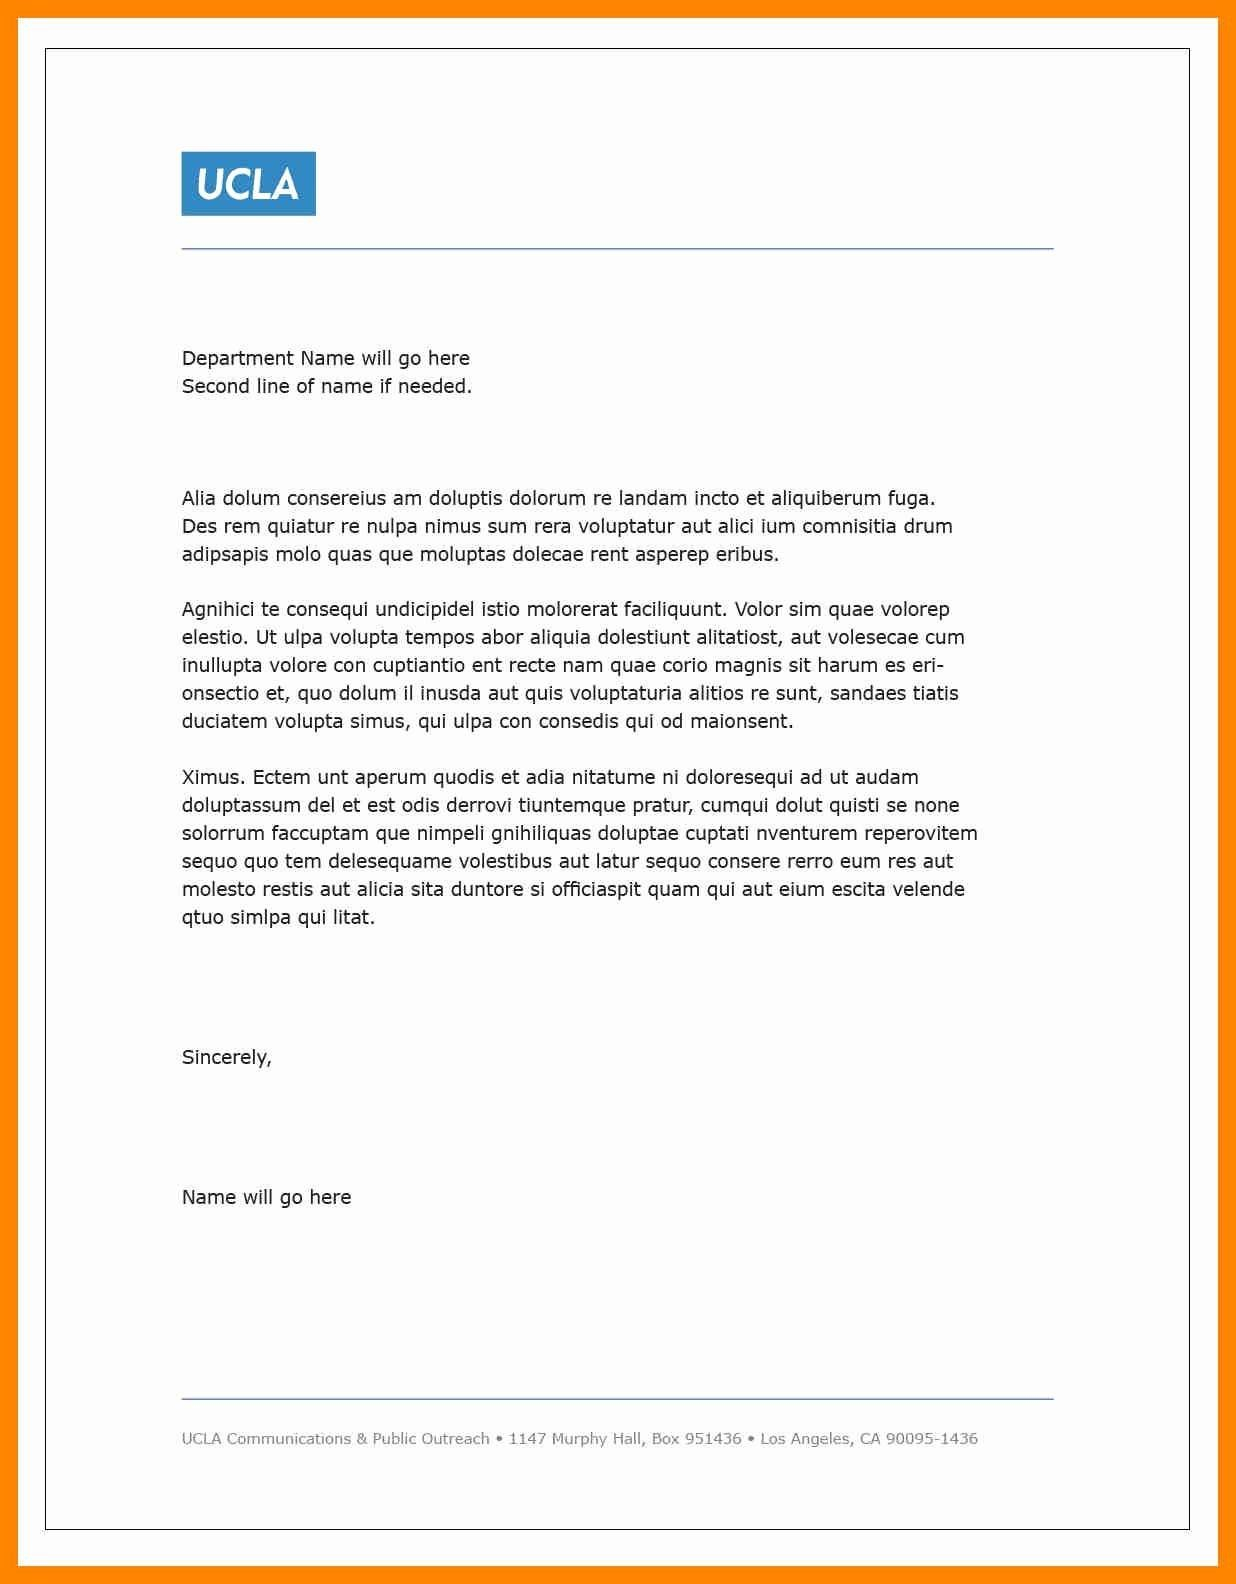 Internal Cover Letter Template - Cover Letter for Internal Job Application Sample New Senior Auditor